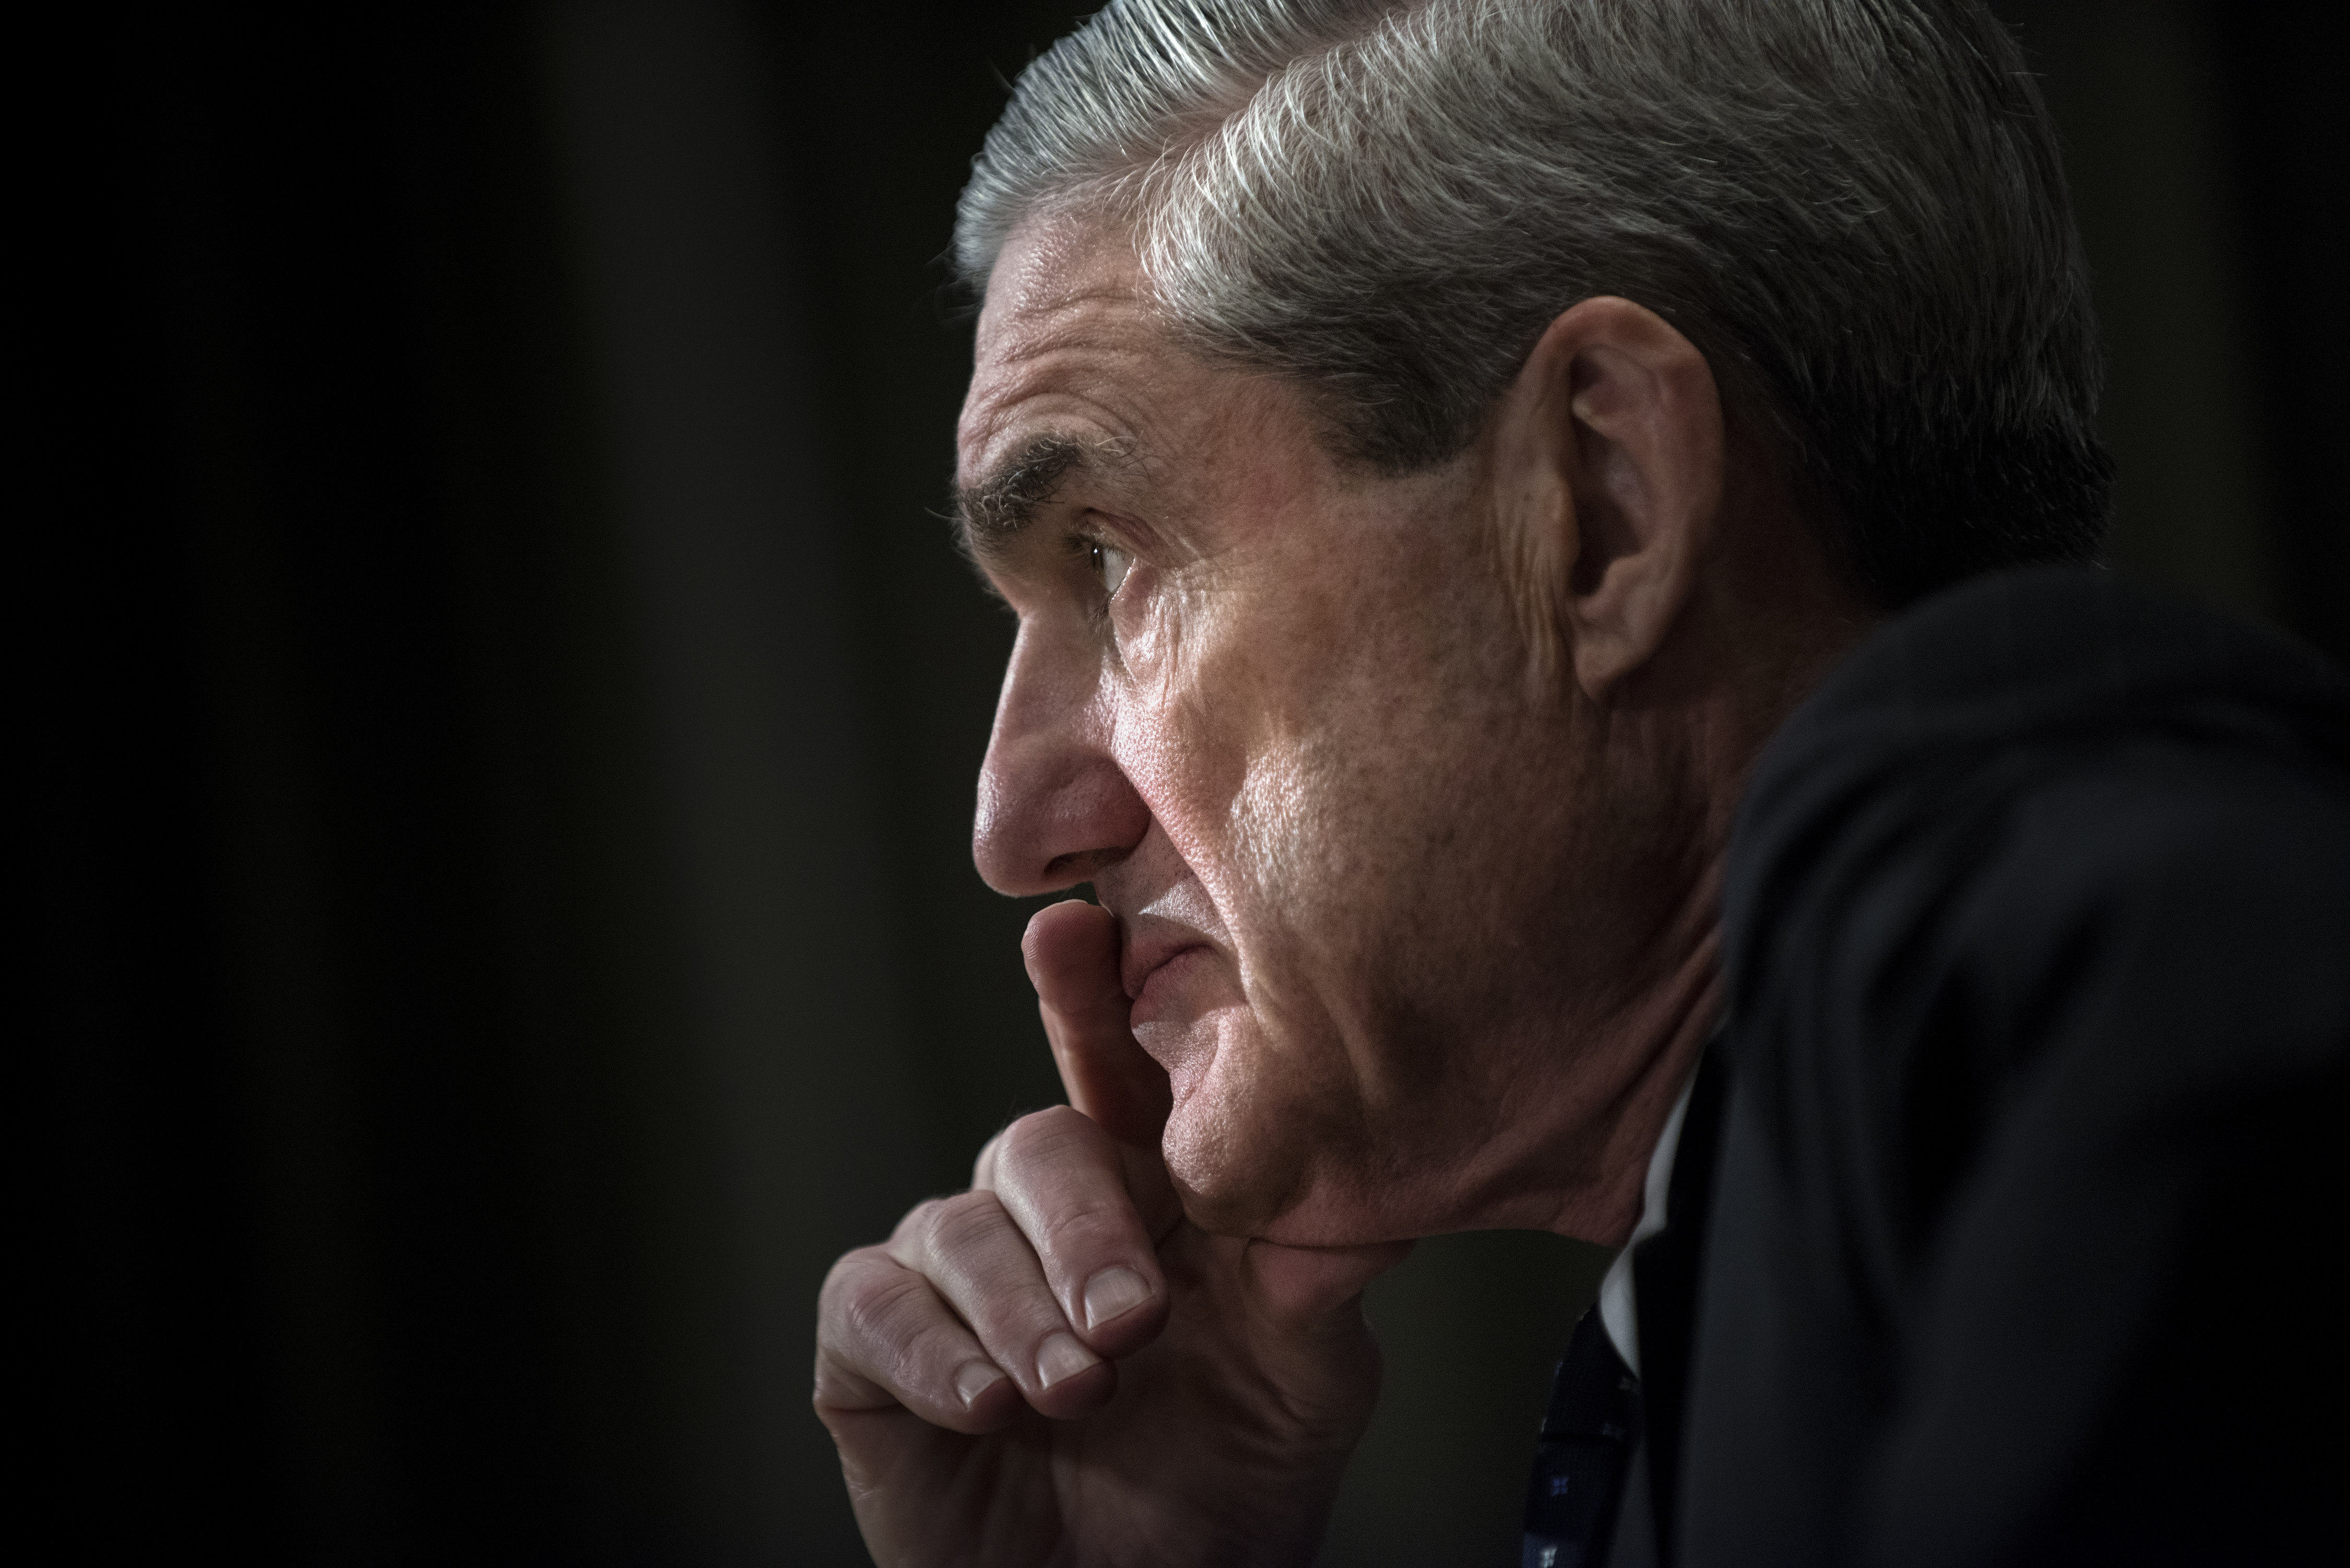 Jerome Corsi says Mueller will soon indict him for perjury